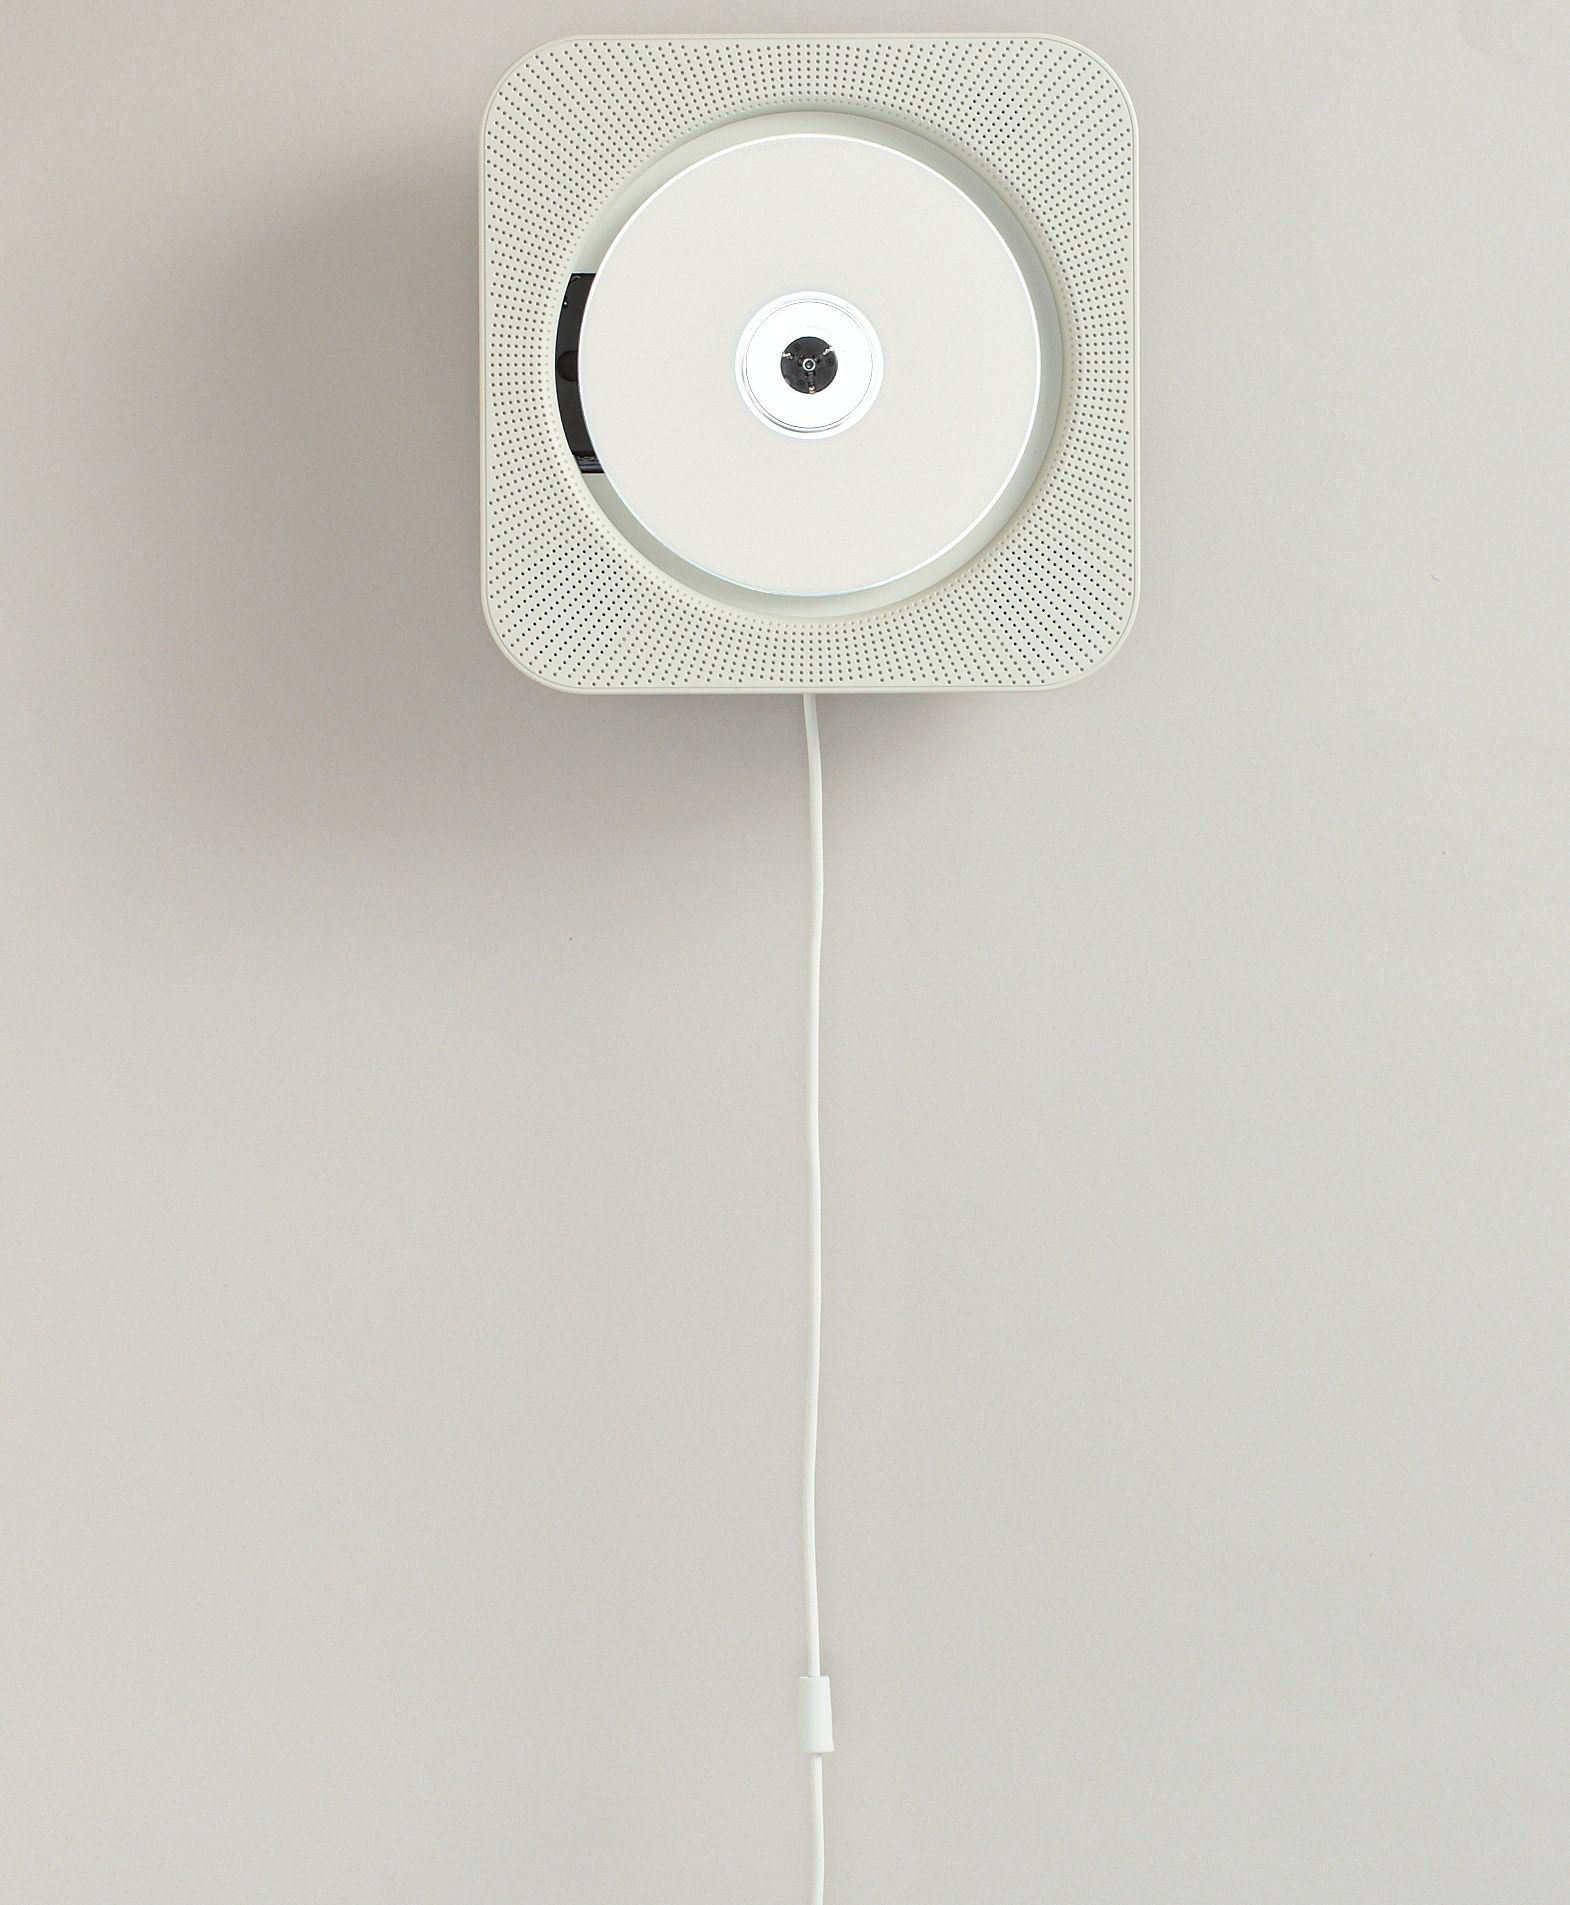 naoto fukasawa cd player muji 2006 super normal products i love pinterest murals. Black Bedroom Furniture Sets. Home Design Ideas